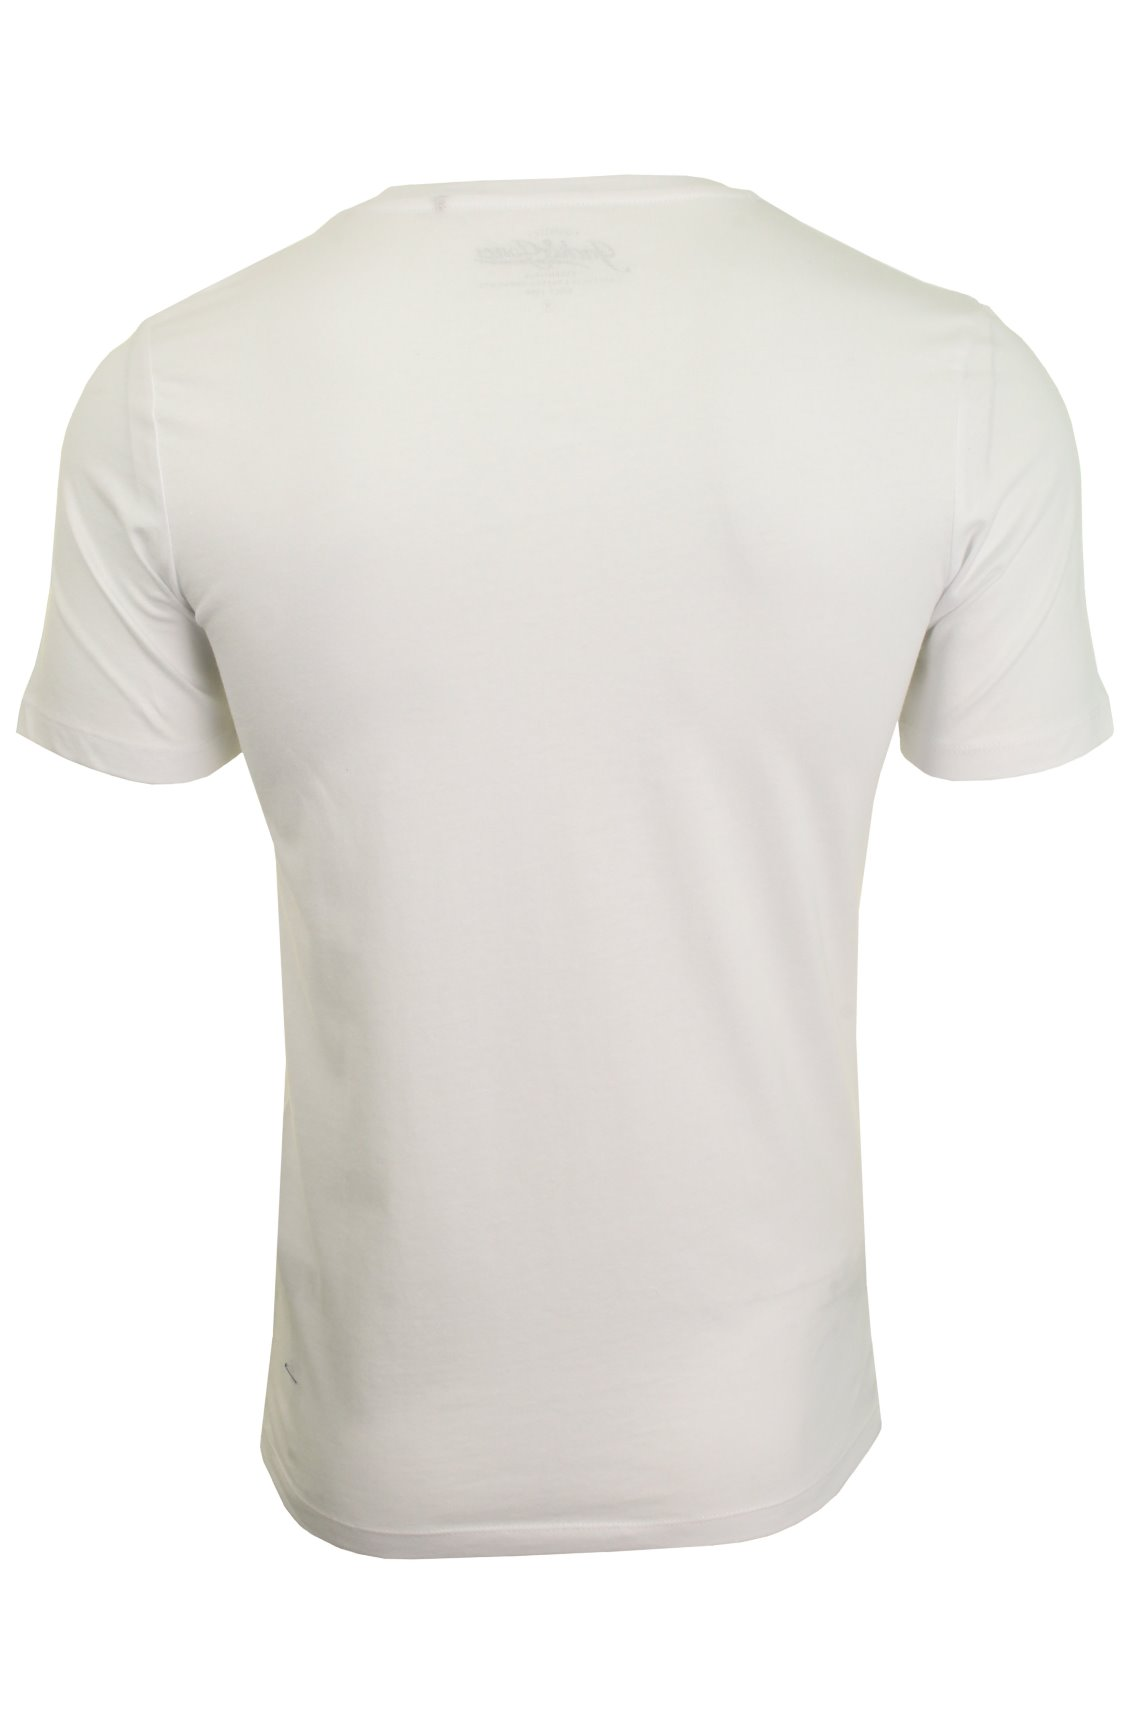 Jack-amp-Jones-Mens-Short-Sleeved-T-Shirt-039-JJEJEANS-039 thumbnail 21